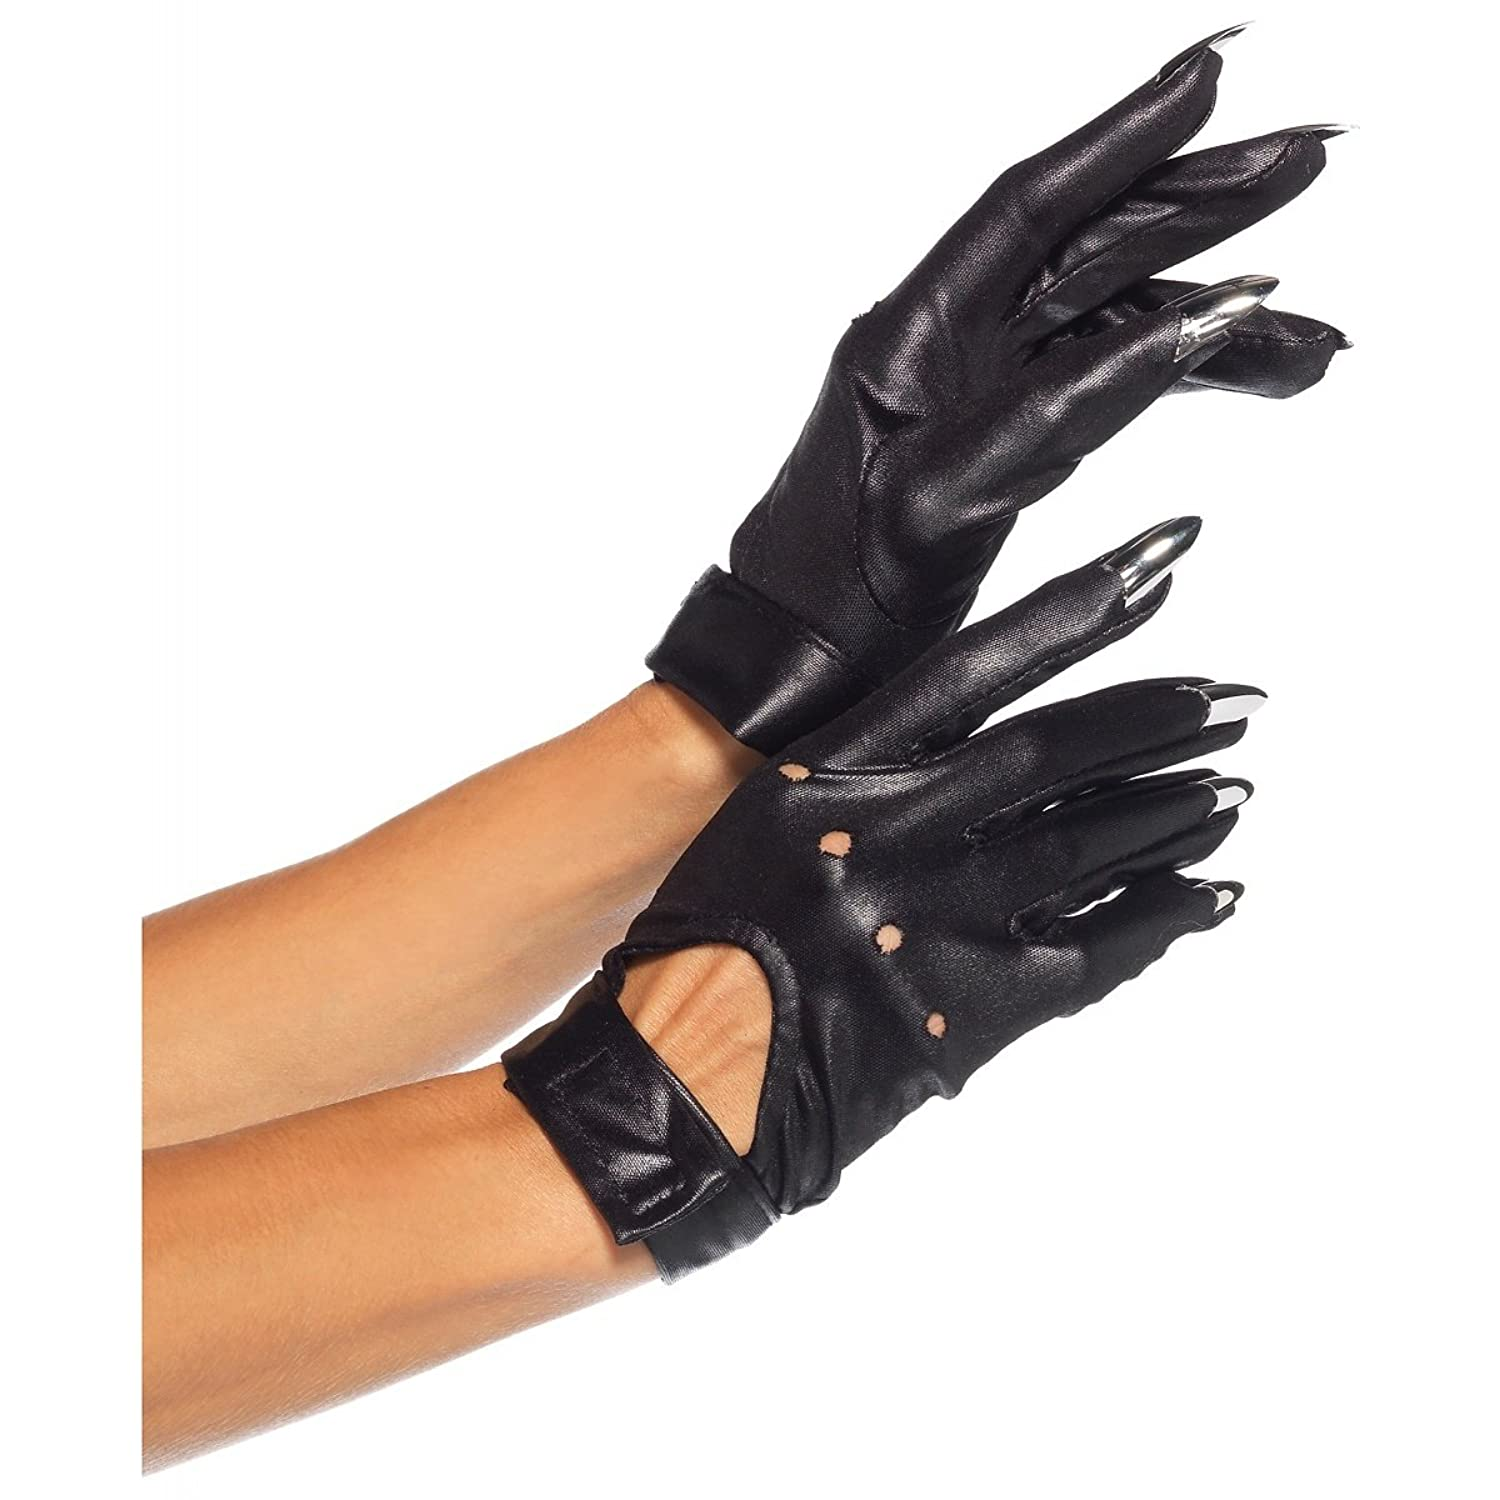 Motorcycle leather gloves amazon - Motorcycle Leather Gloves Amazon 43